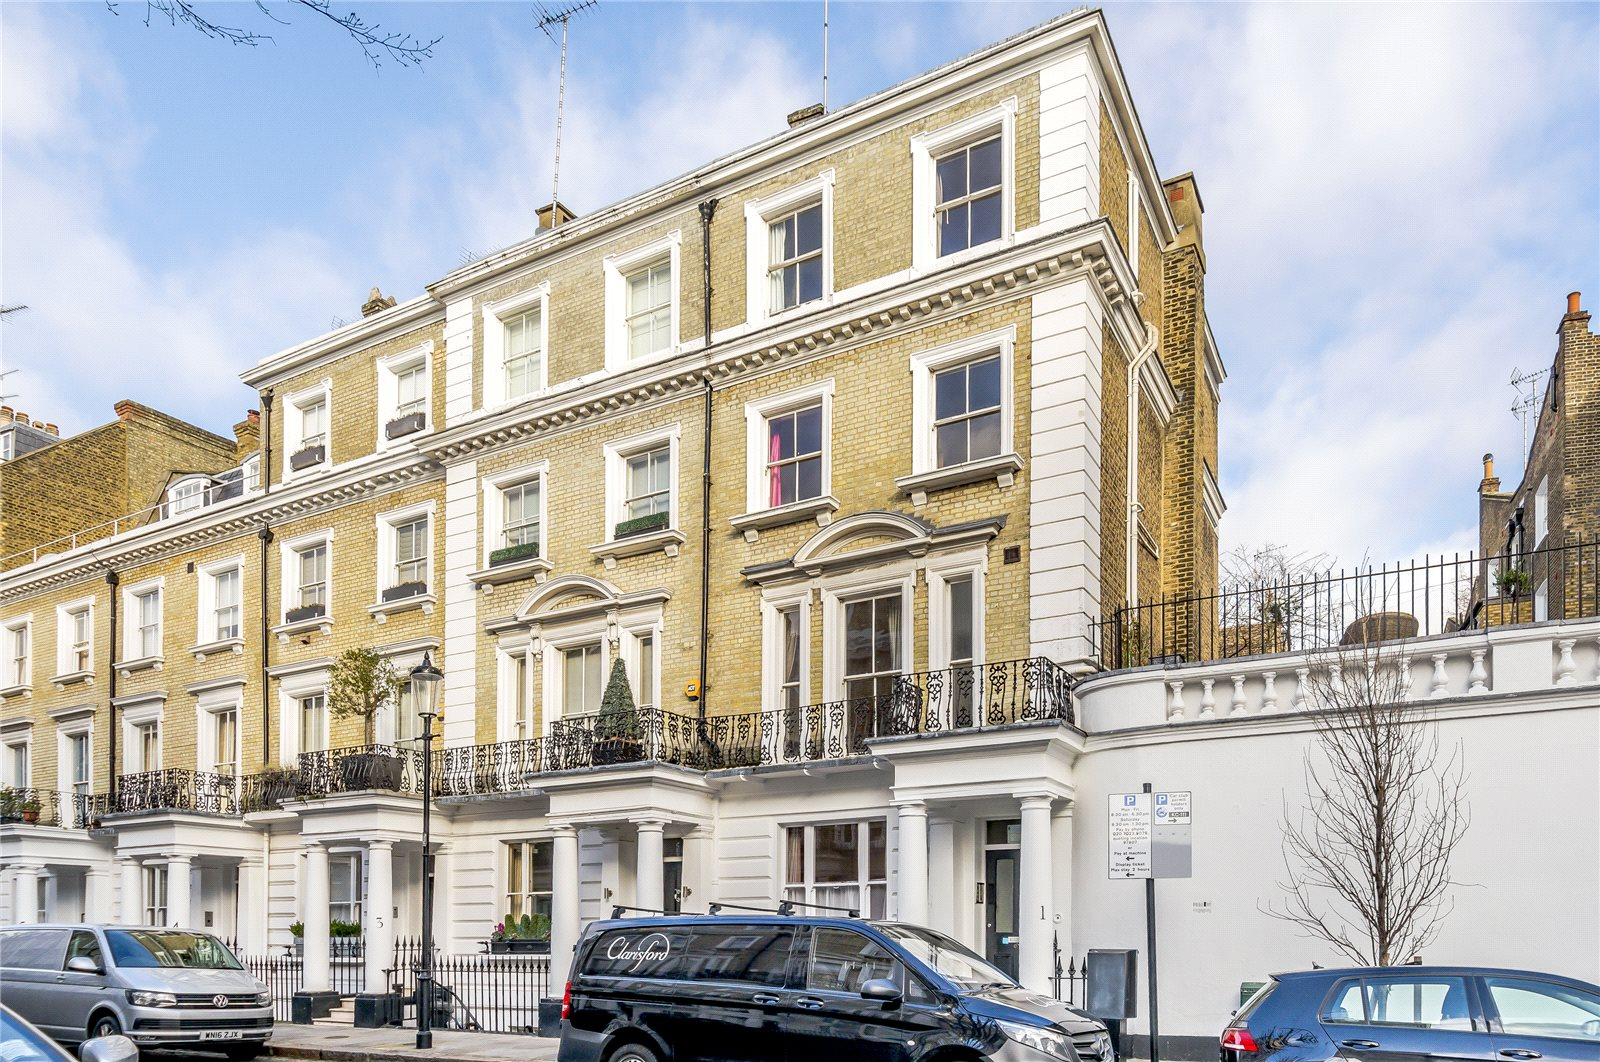 Single Family Home for Sale at Neville Street, South Kensington, London, SW7 South Kensington, London, England